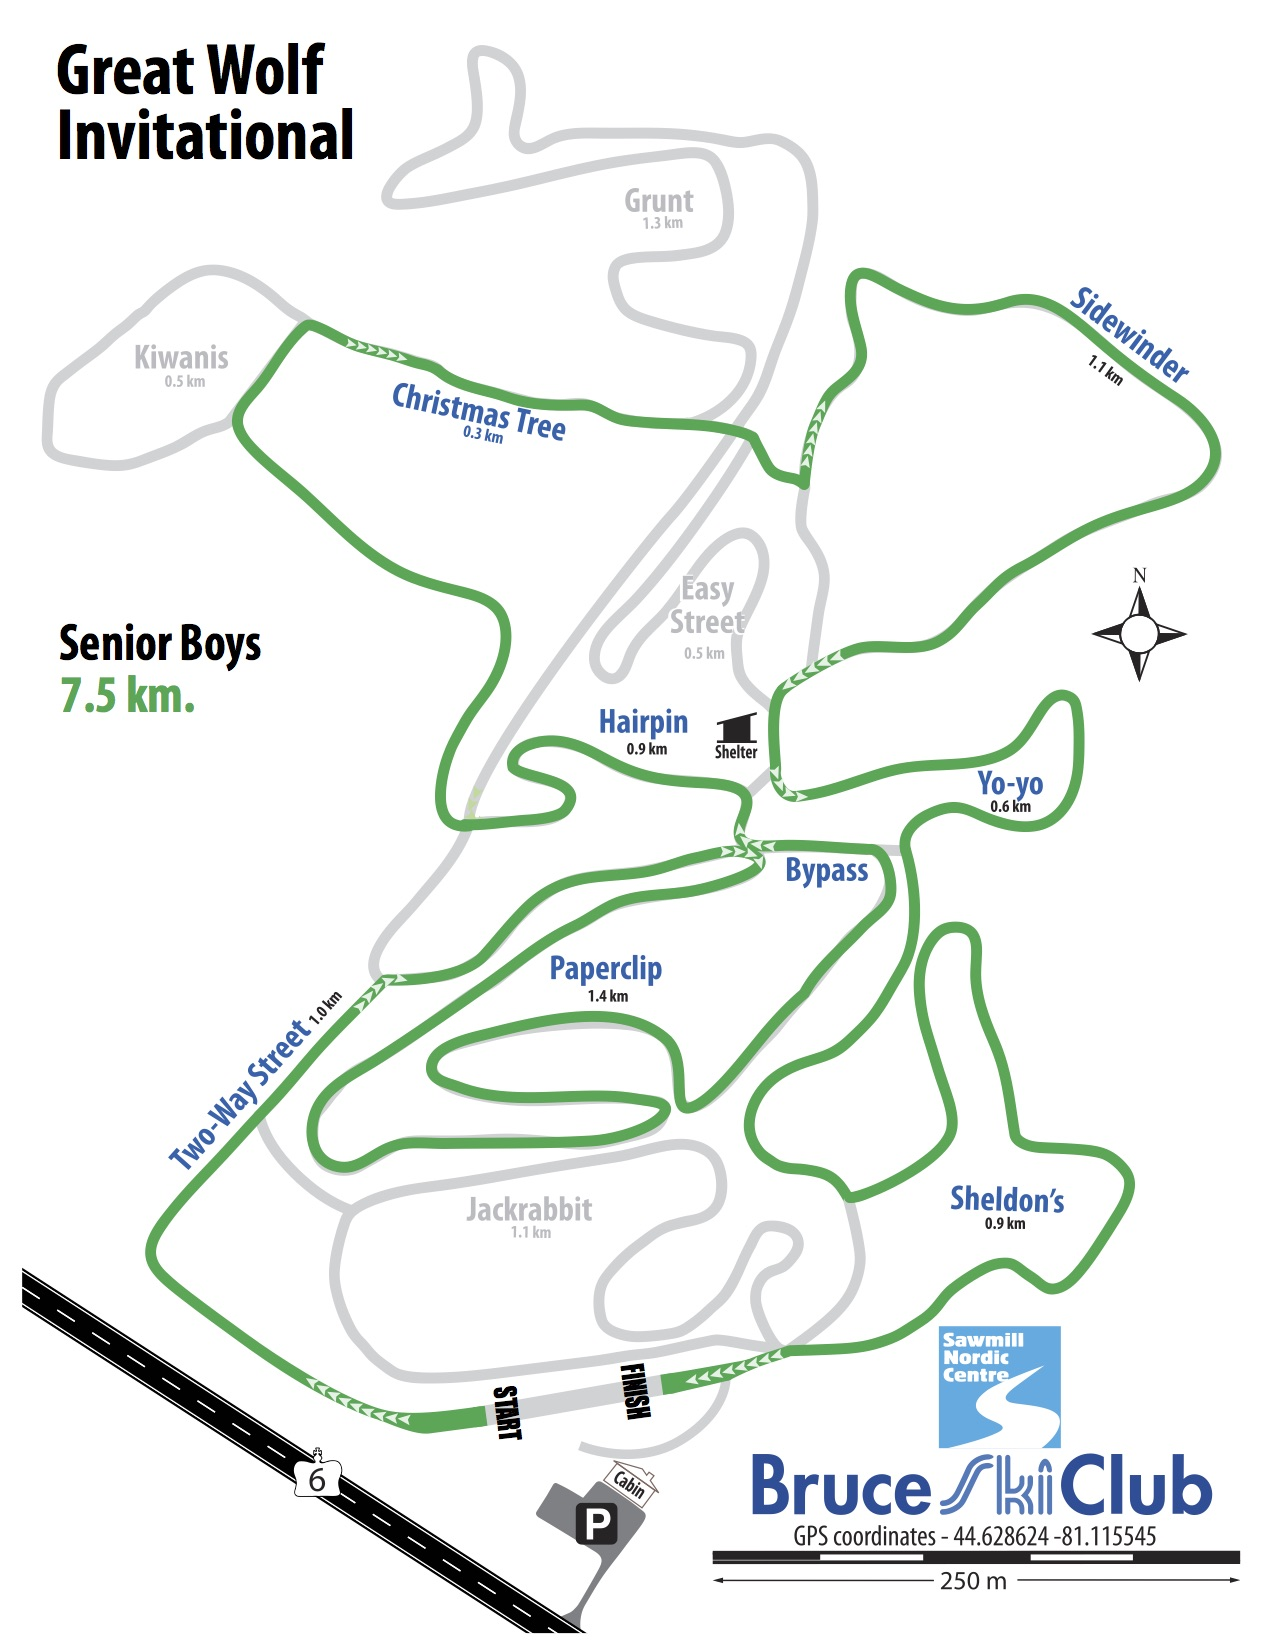 Great Wolf Invitational Cross-Country Ski Race, Hepworth, Ontario - Map: Senior Boys